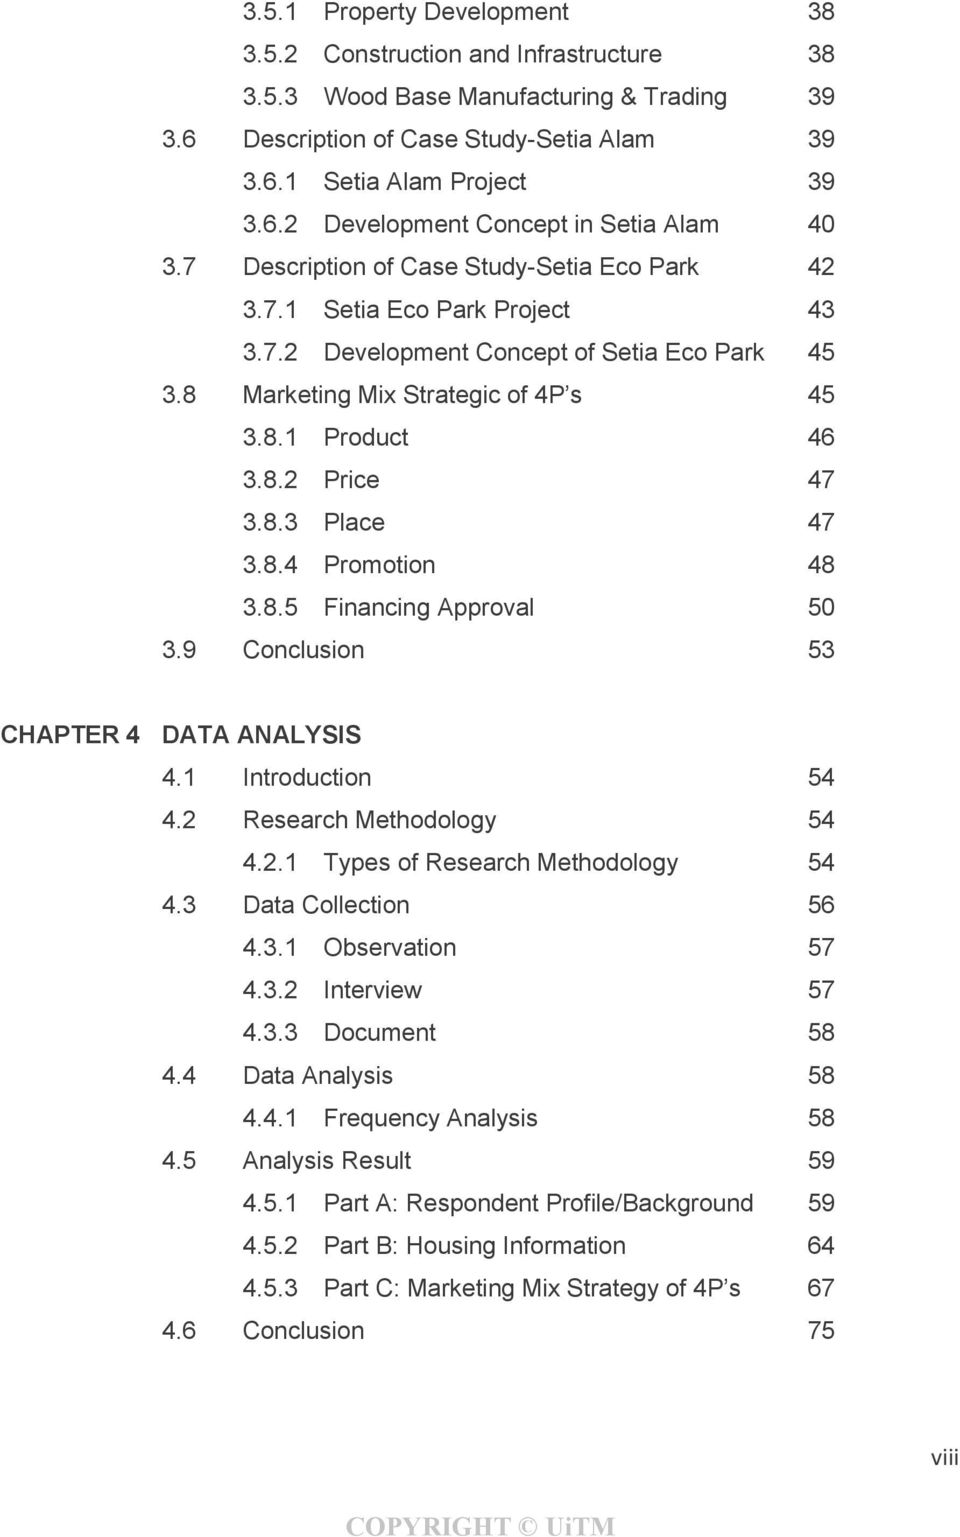 8.4 Promotion 48 3.8.5 Financing Approval 50 3.9 Conclusion 53 CHAPTER 4 DATA ANALYSIS 4.1 Introduction 54 4.2 Research Methodology 54 4.2.1 Types of Research Methodology 54 4.3 Data Collection 56 4.